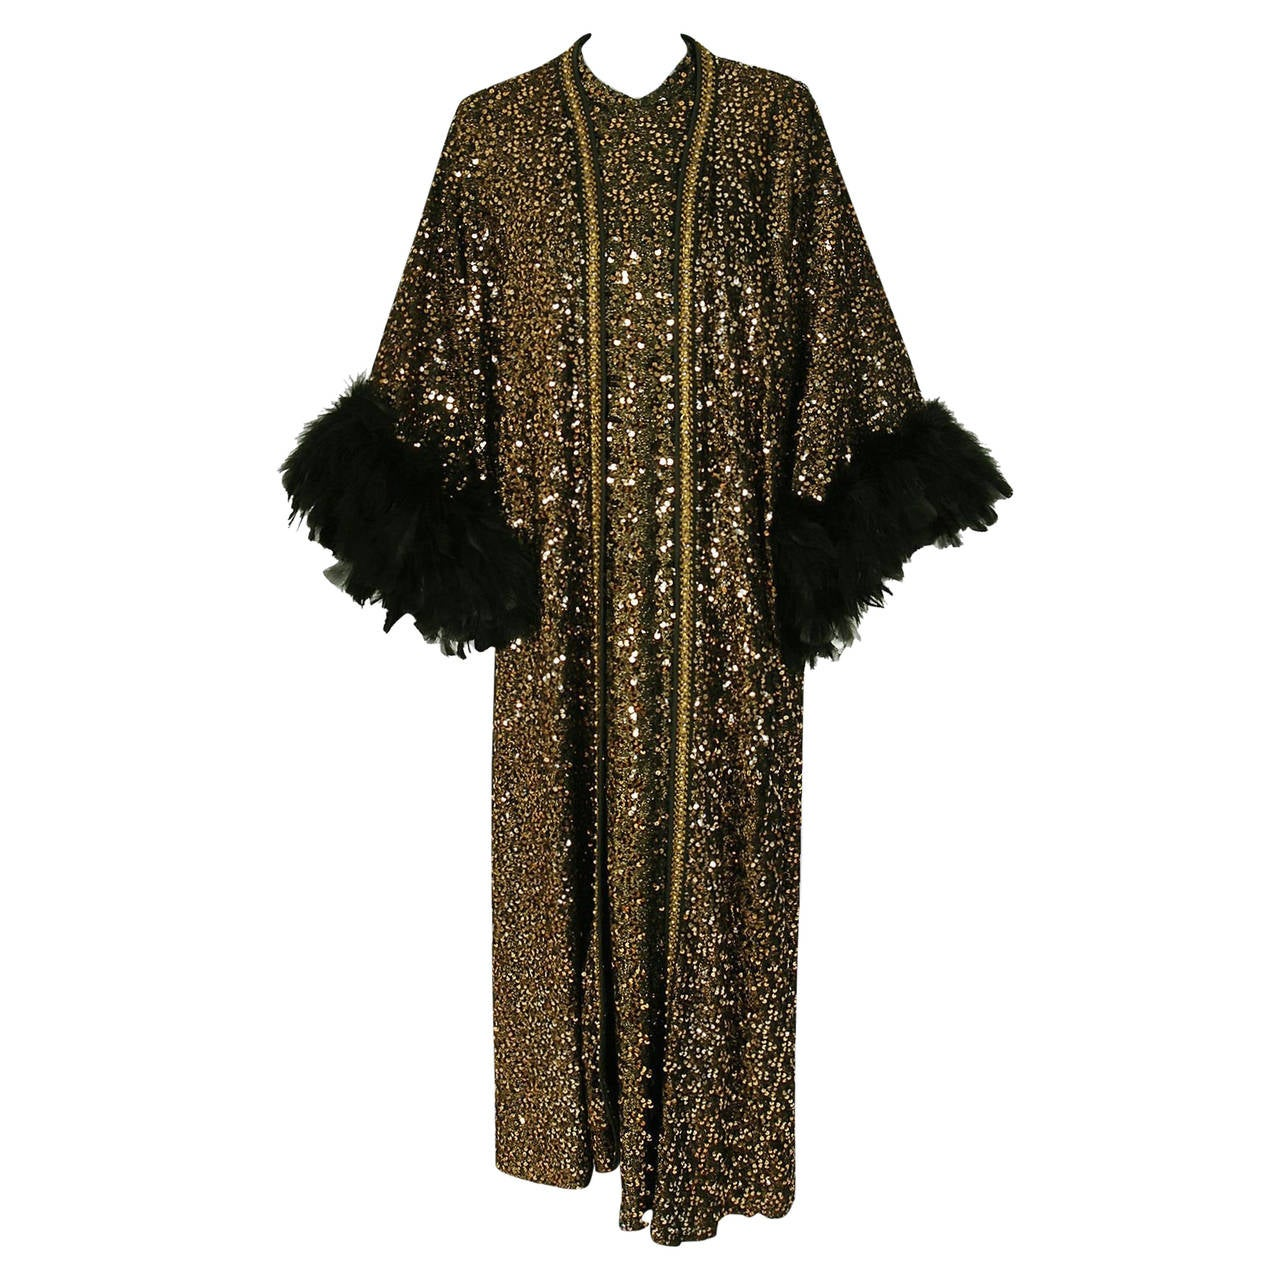 1975 Lucille Ball Celebrity Owned Gold Sequin Hourglass Gown & Feather-Cuff Coat 1